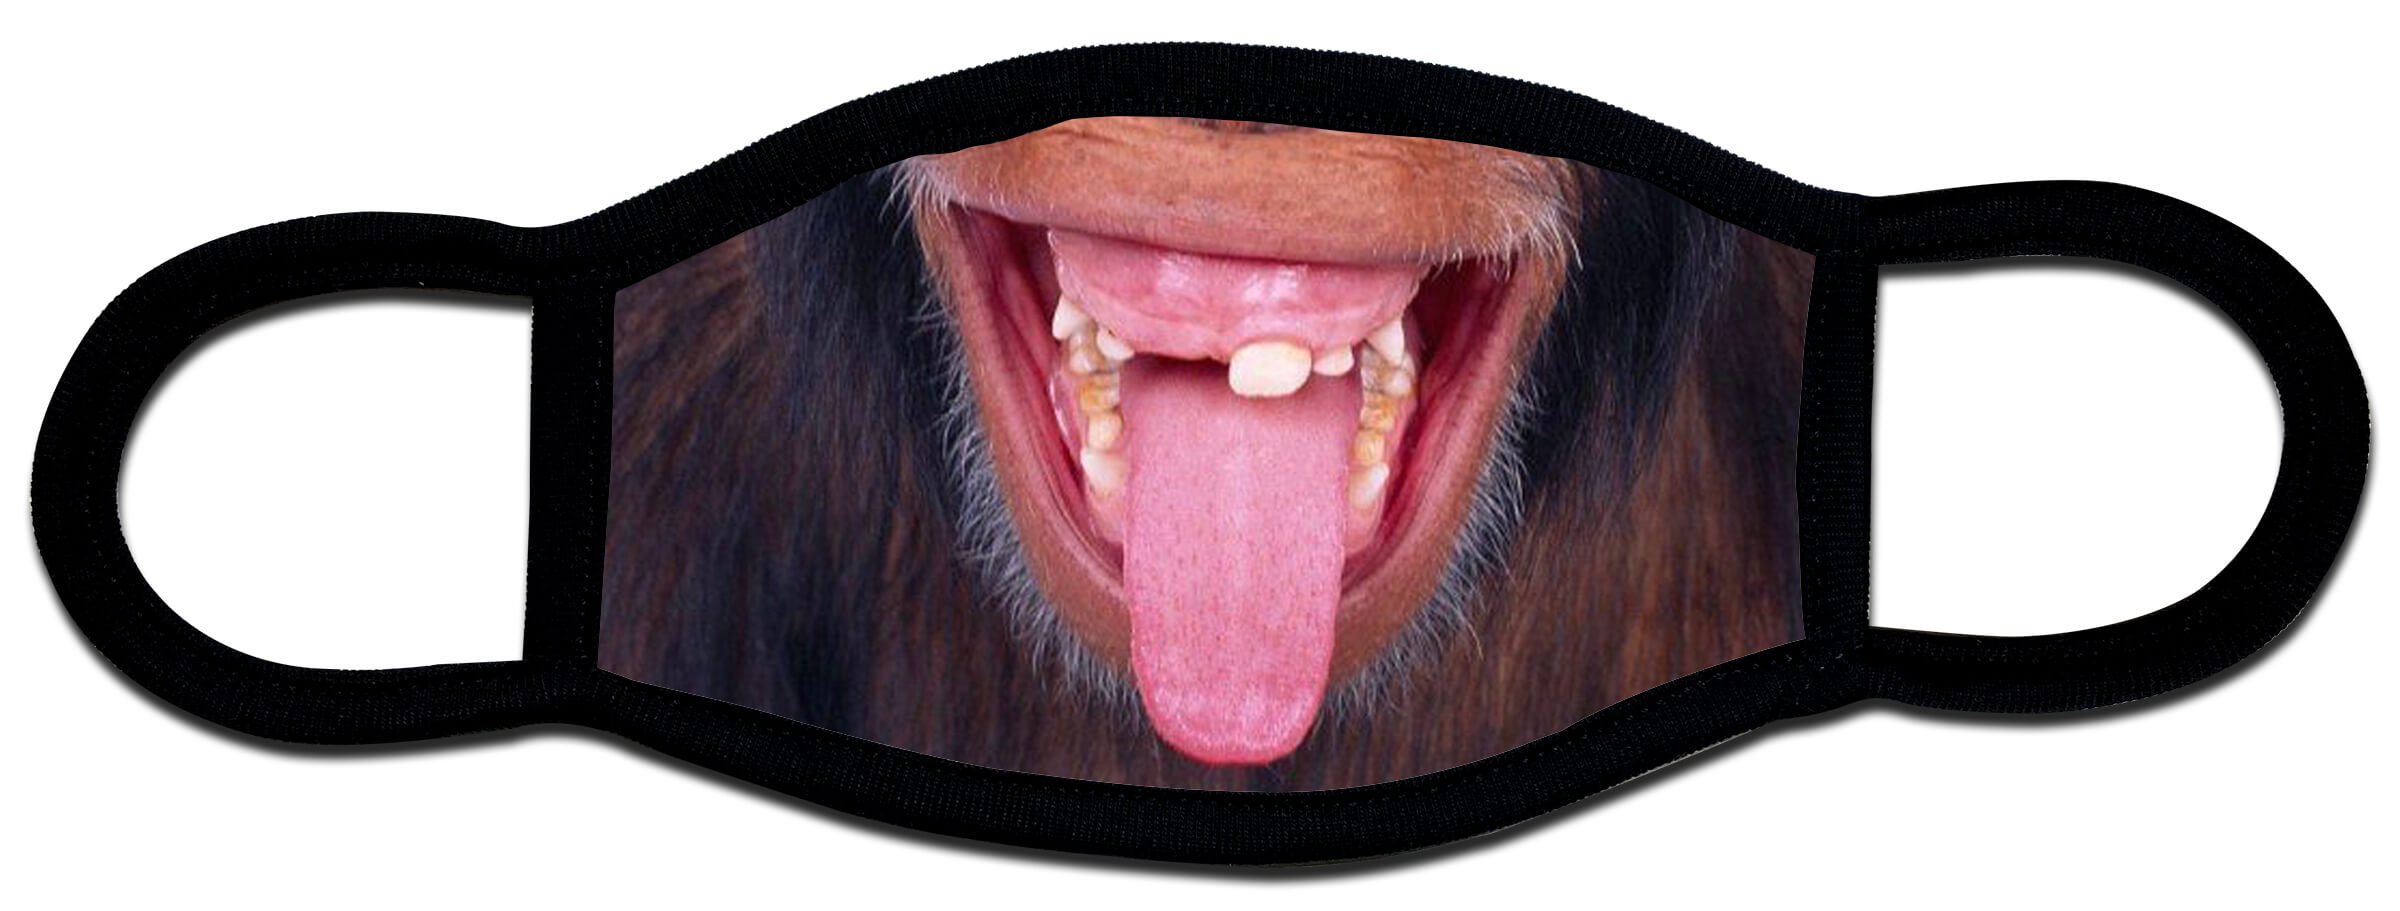 Protective face mask with chimp tongue design by Local Tees Long Island